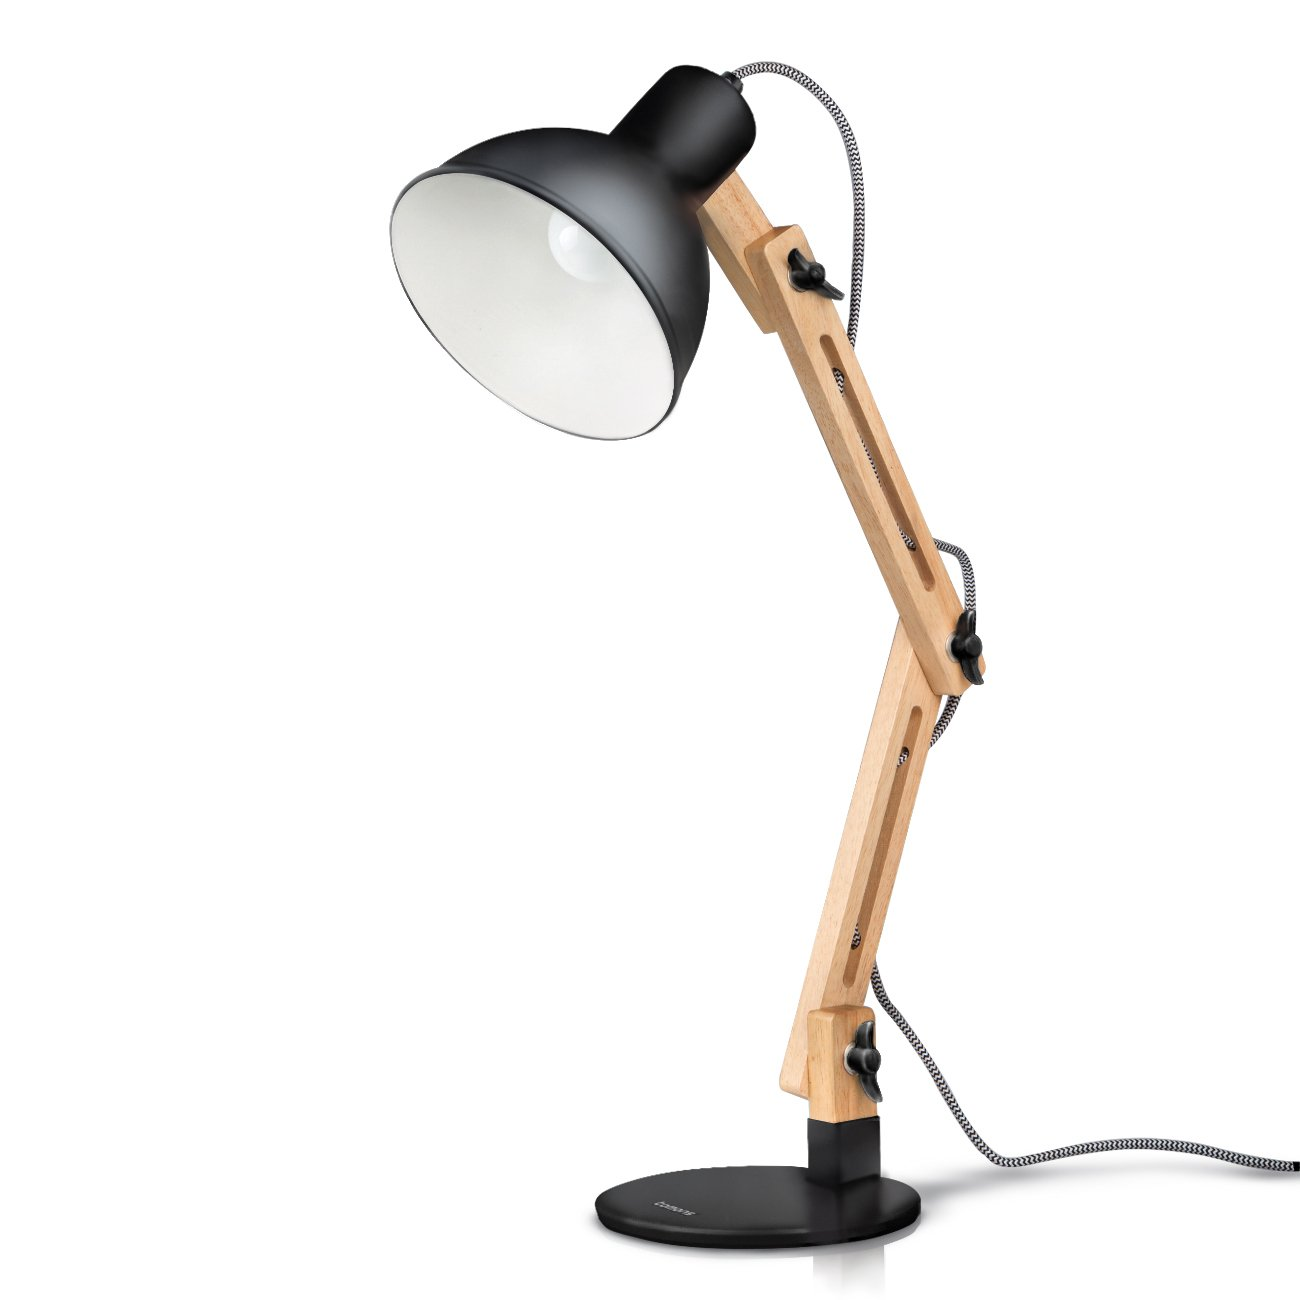 Flexible table lamp home office study reading desk light flexible table lamp home office study reading desk light adjustable black style mozeypictures Gallery